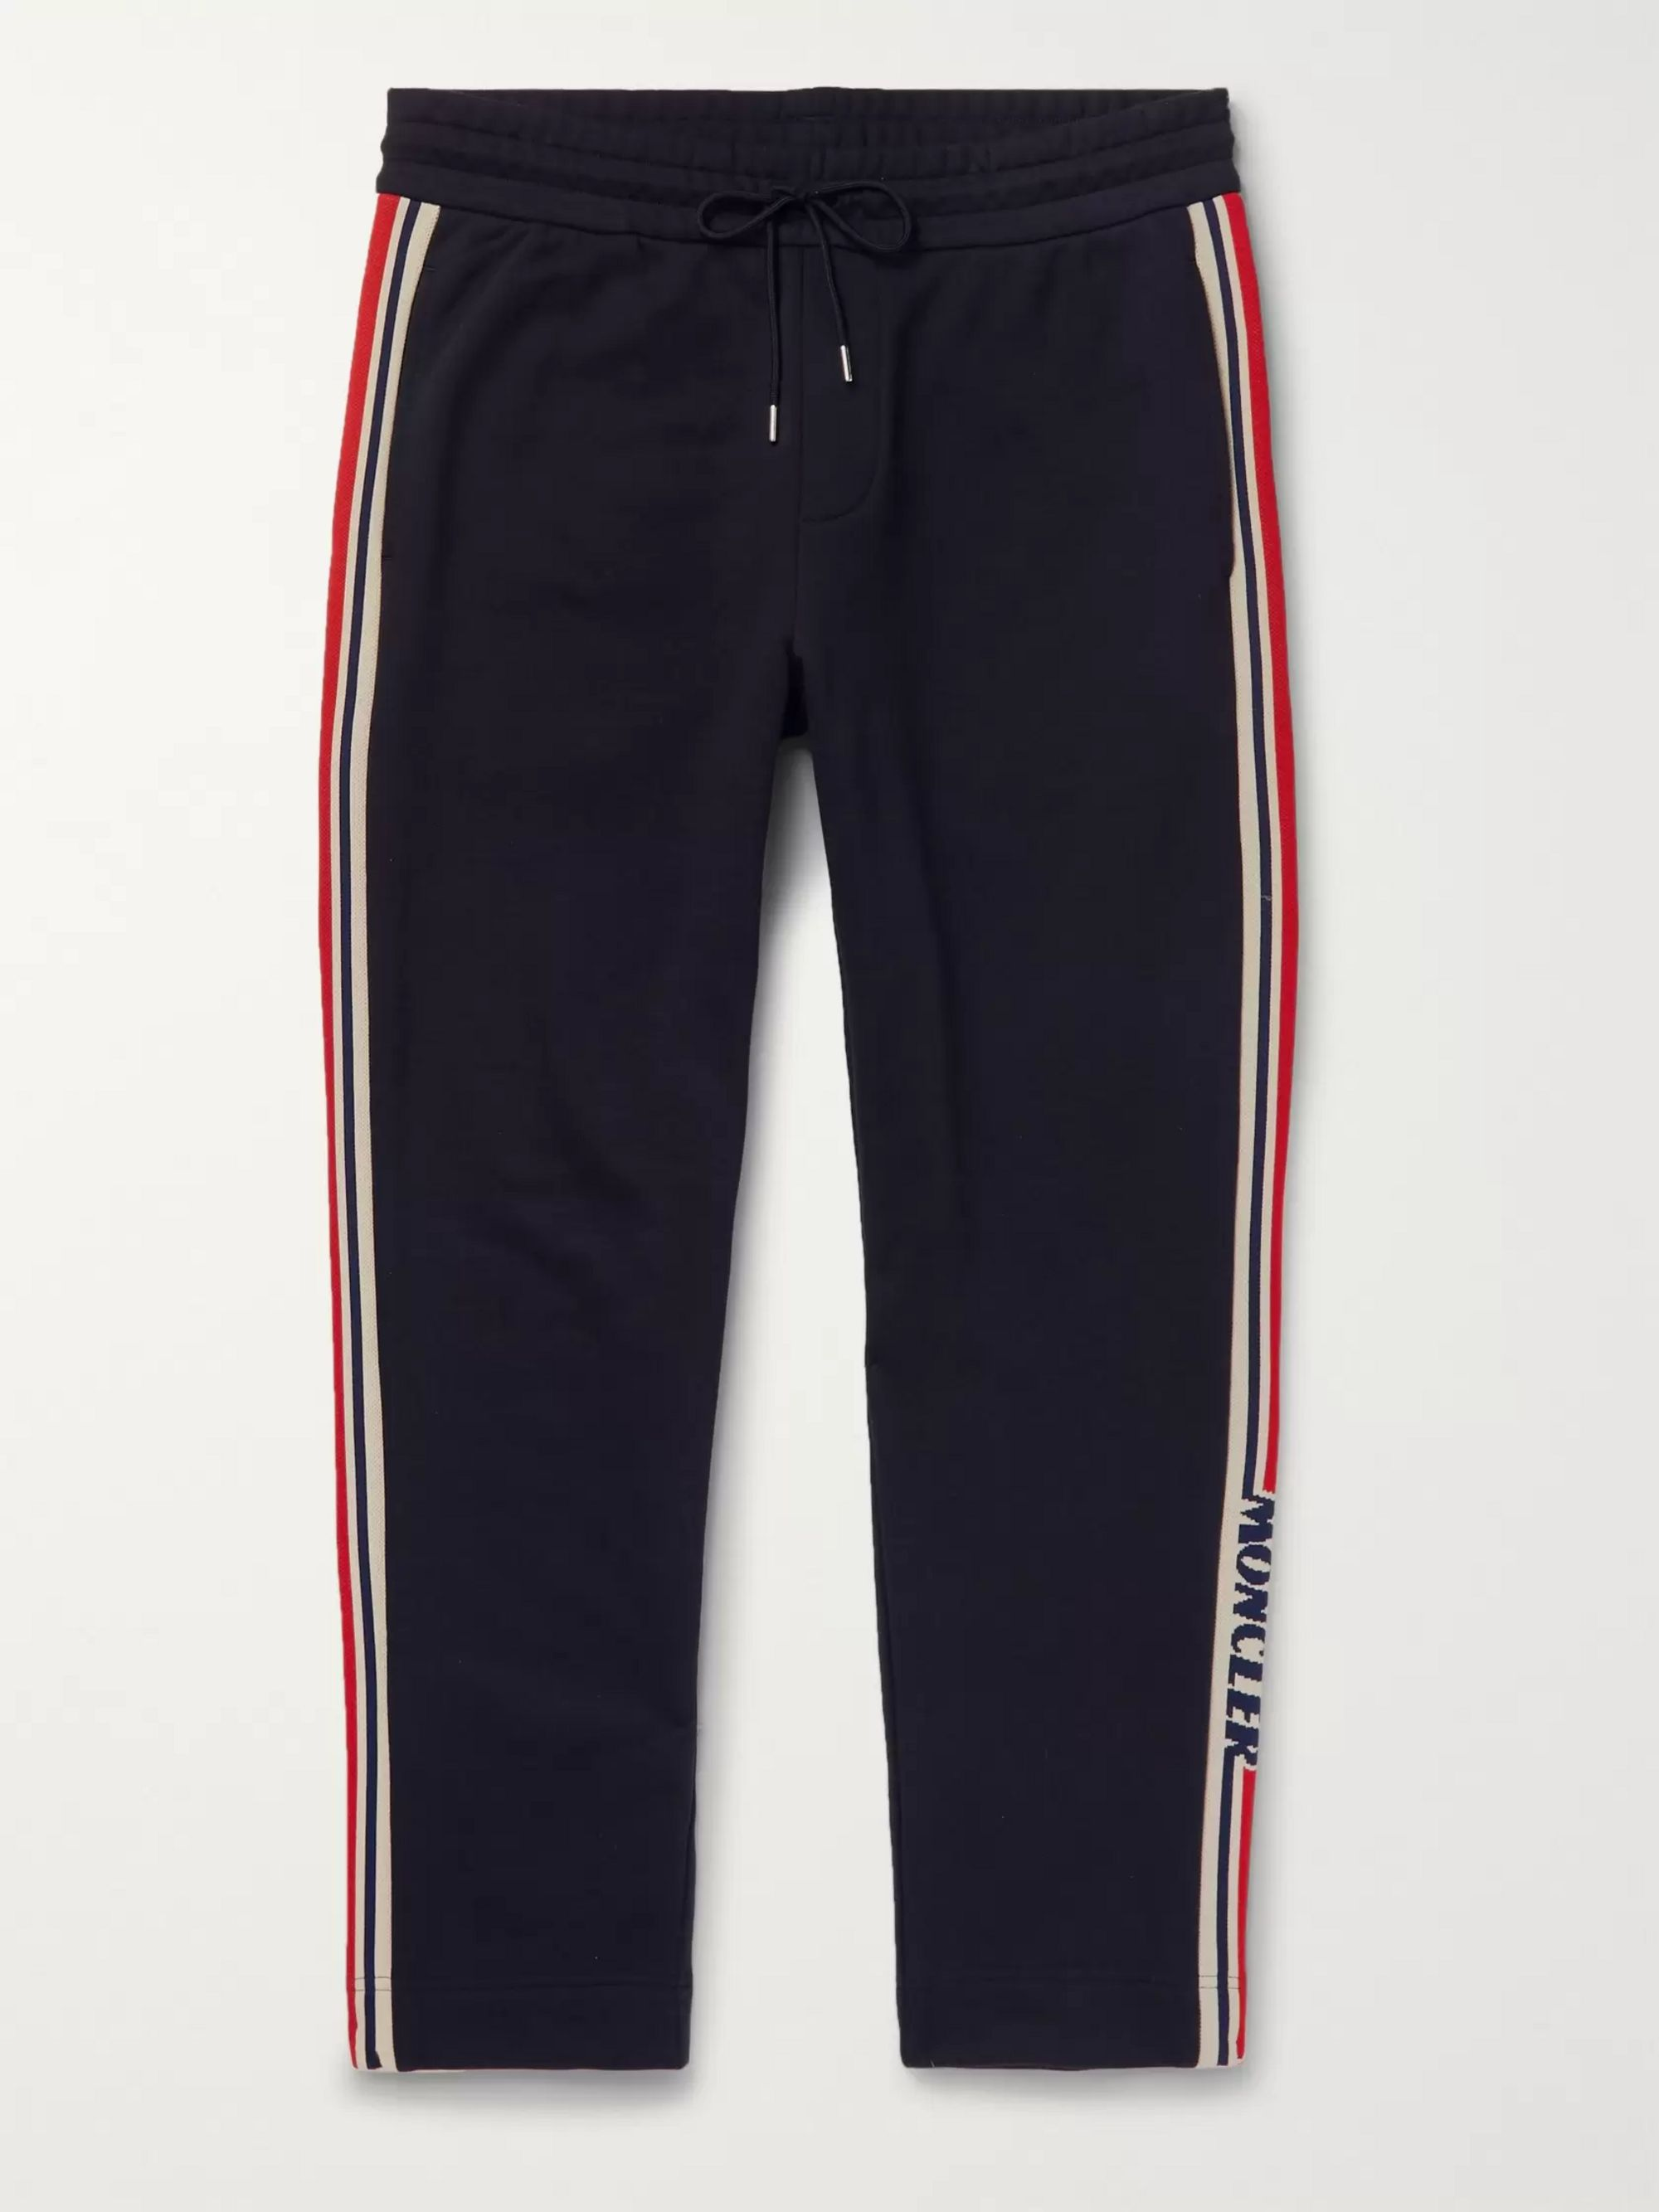 MONCLER Slim-Fit Grosgrain-Trimmed Loopback Cotton-Jersey Track Pants